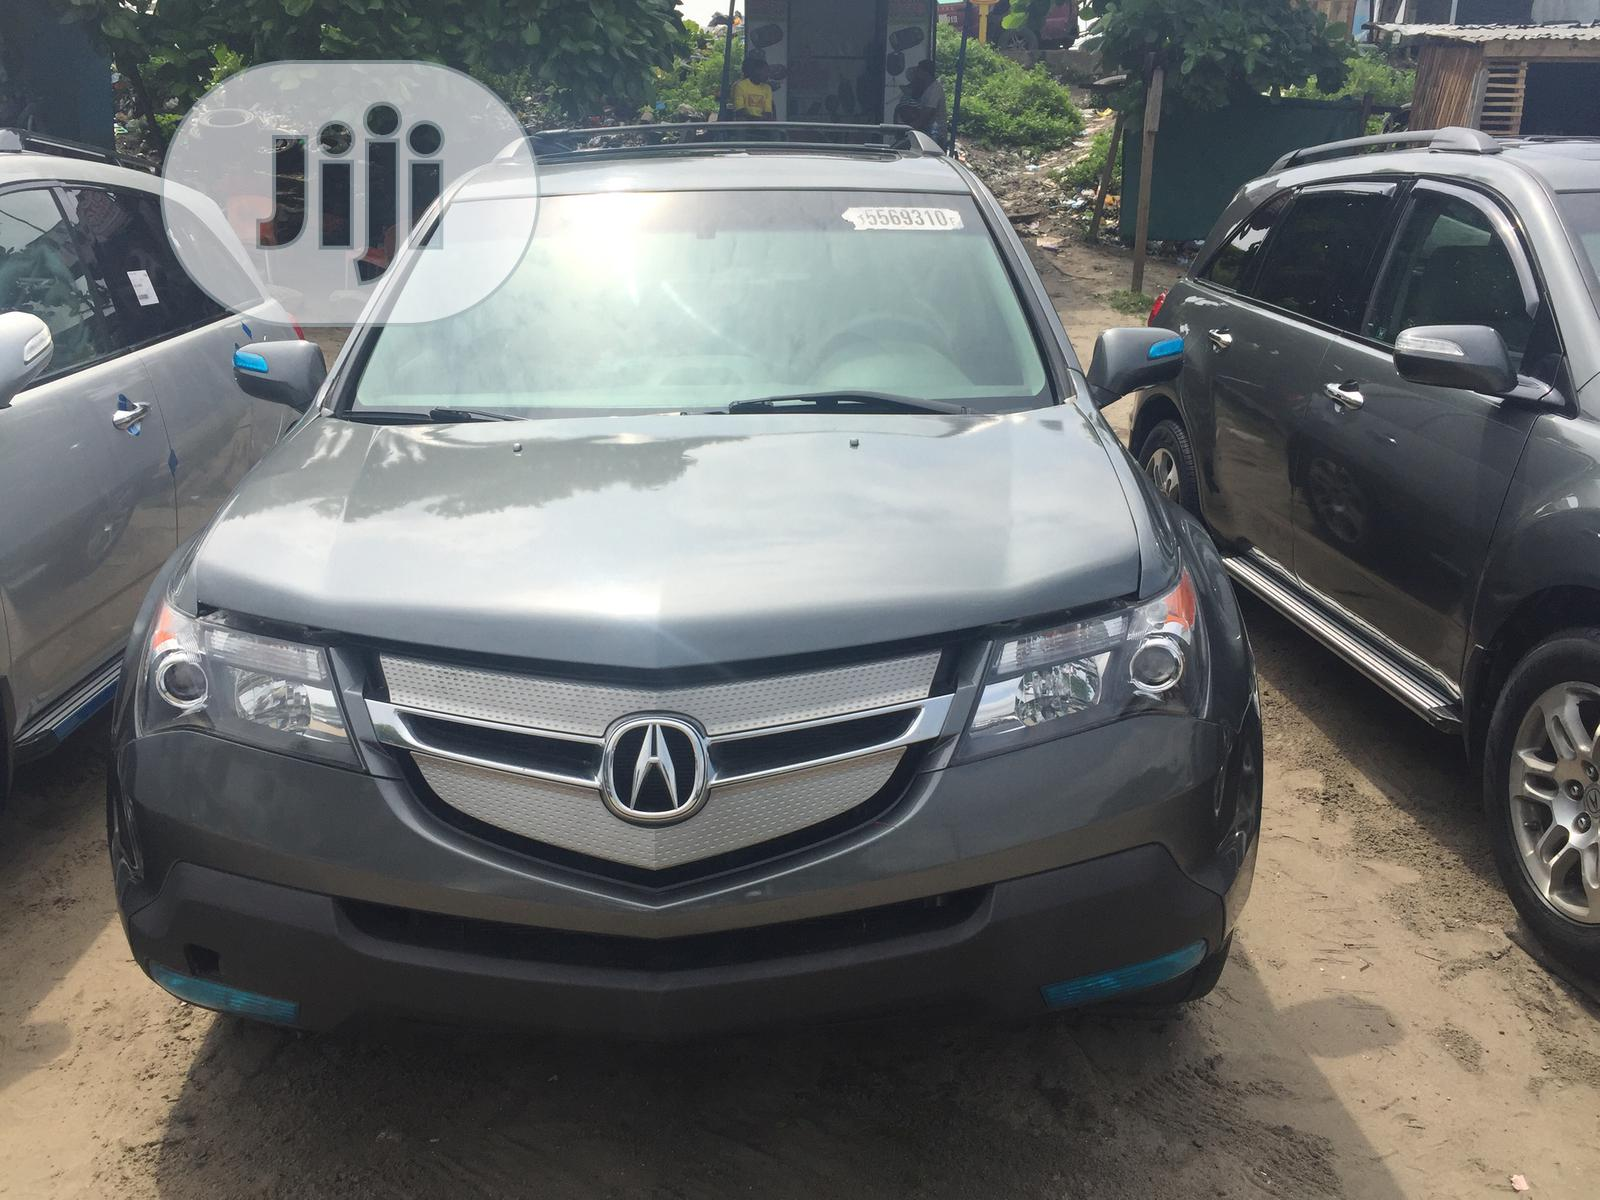 Acura MDX 2008 SUV 4dr AWD (3.7 6cyl 5A) Gray